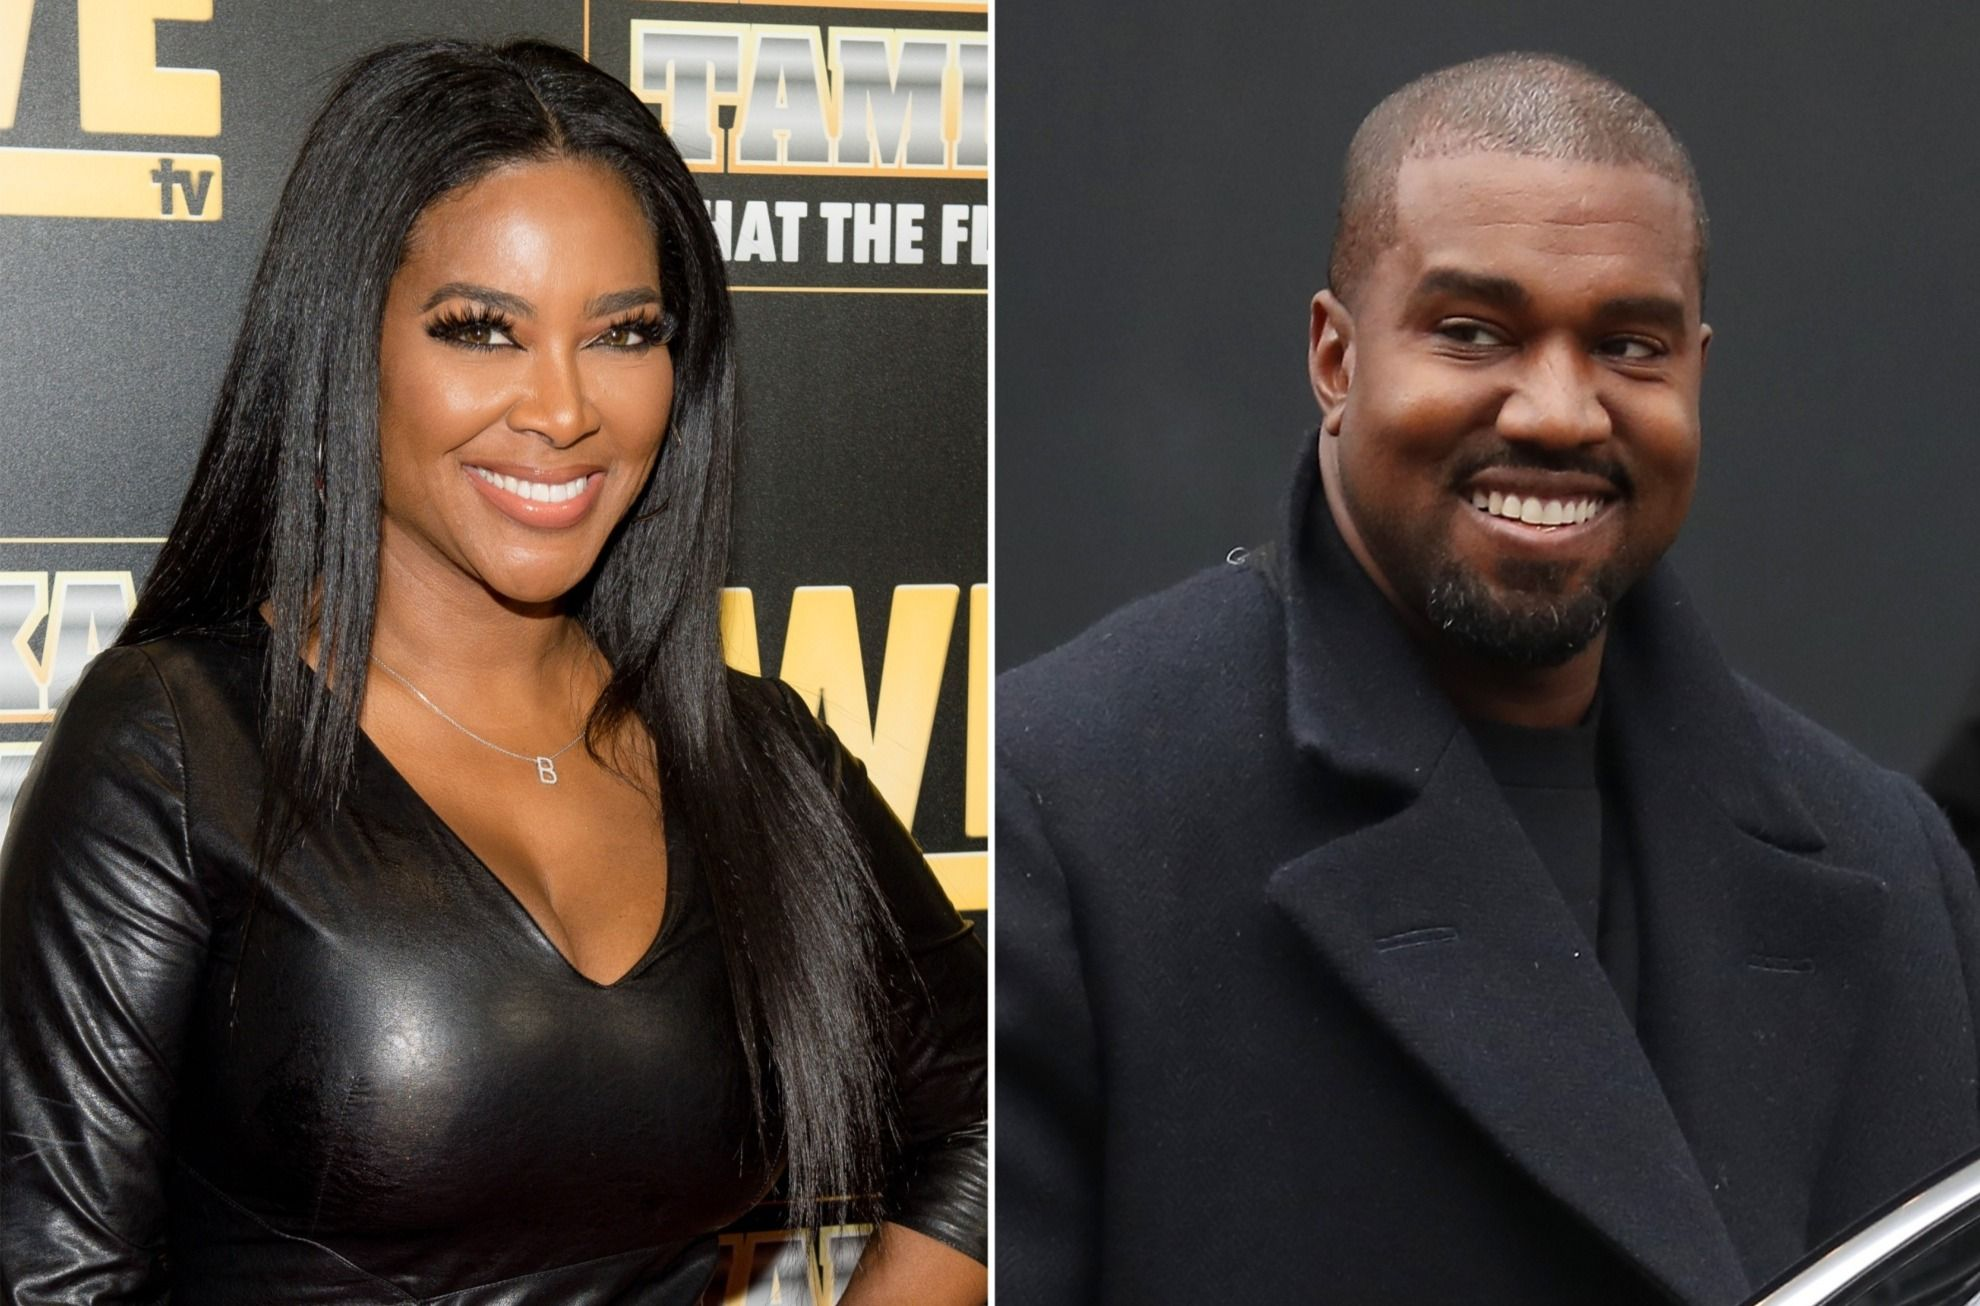 Kenya Moore Recalls Disastrous Date With Kanye West: 'It Was Just The Craziest Thing'